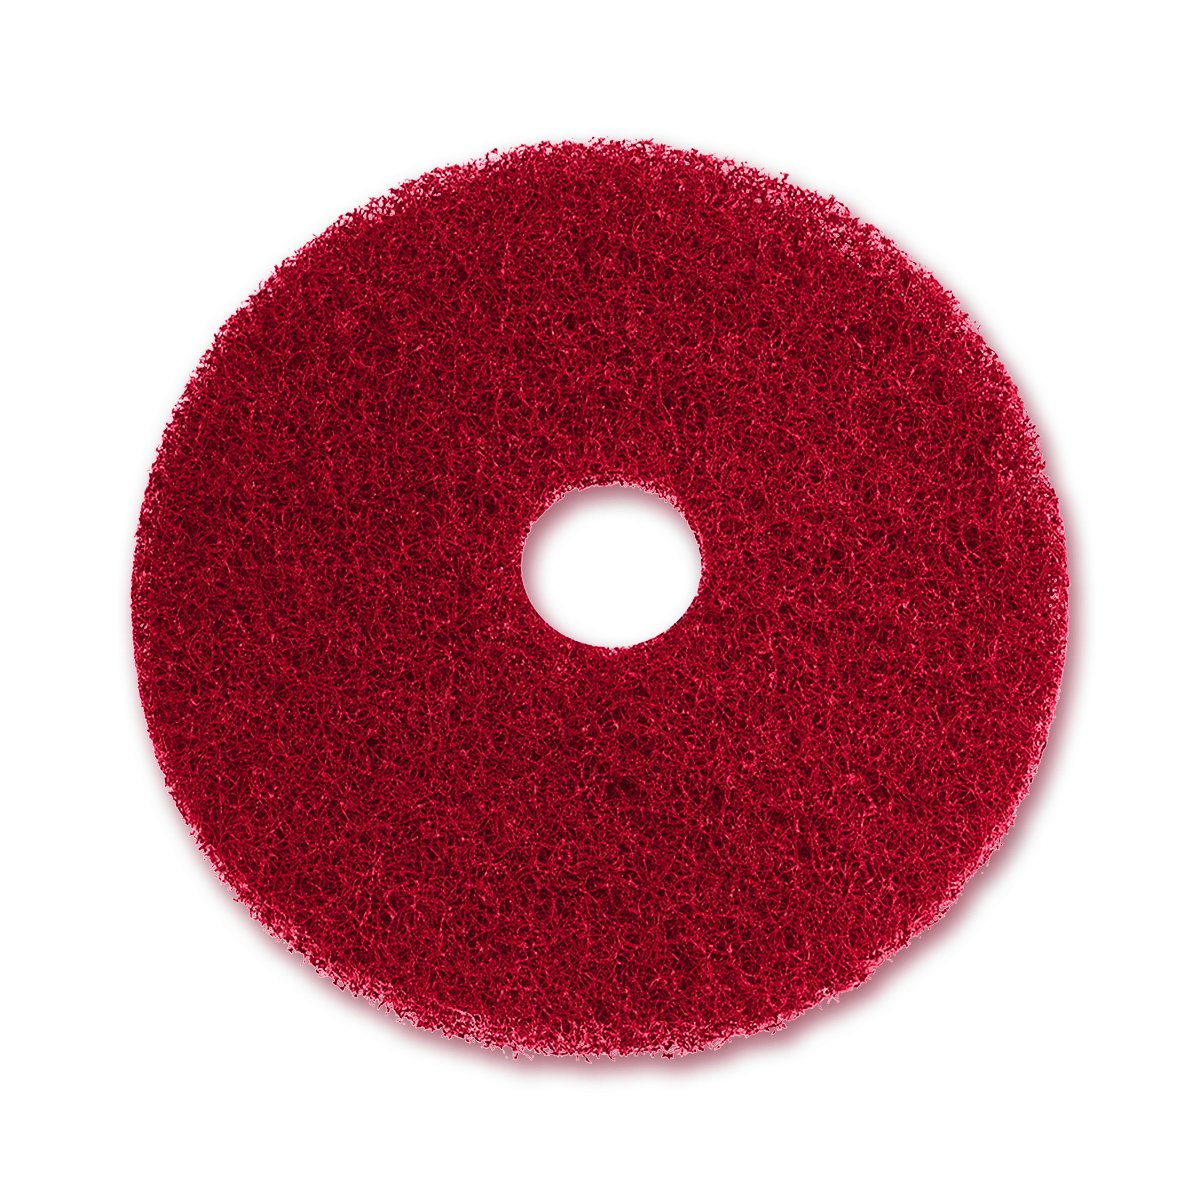 UltraSource Floor Buffing Pad, 20'', Red (Pack of 5)